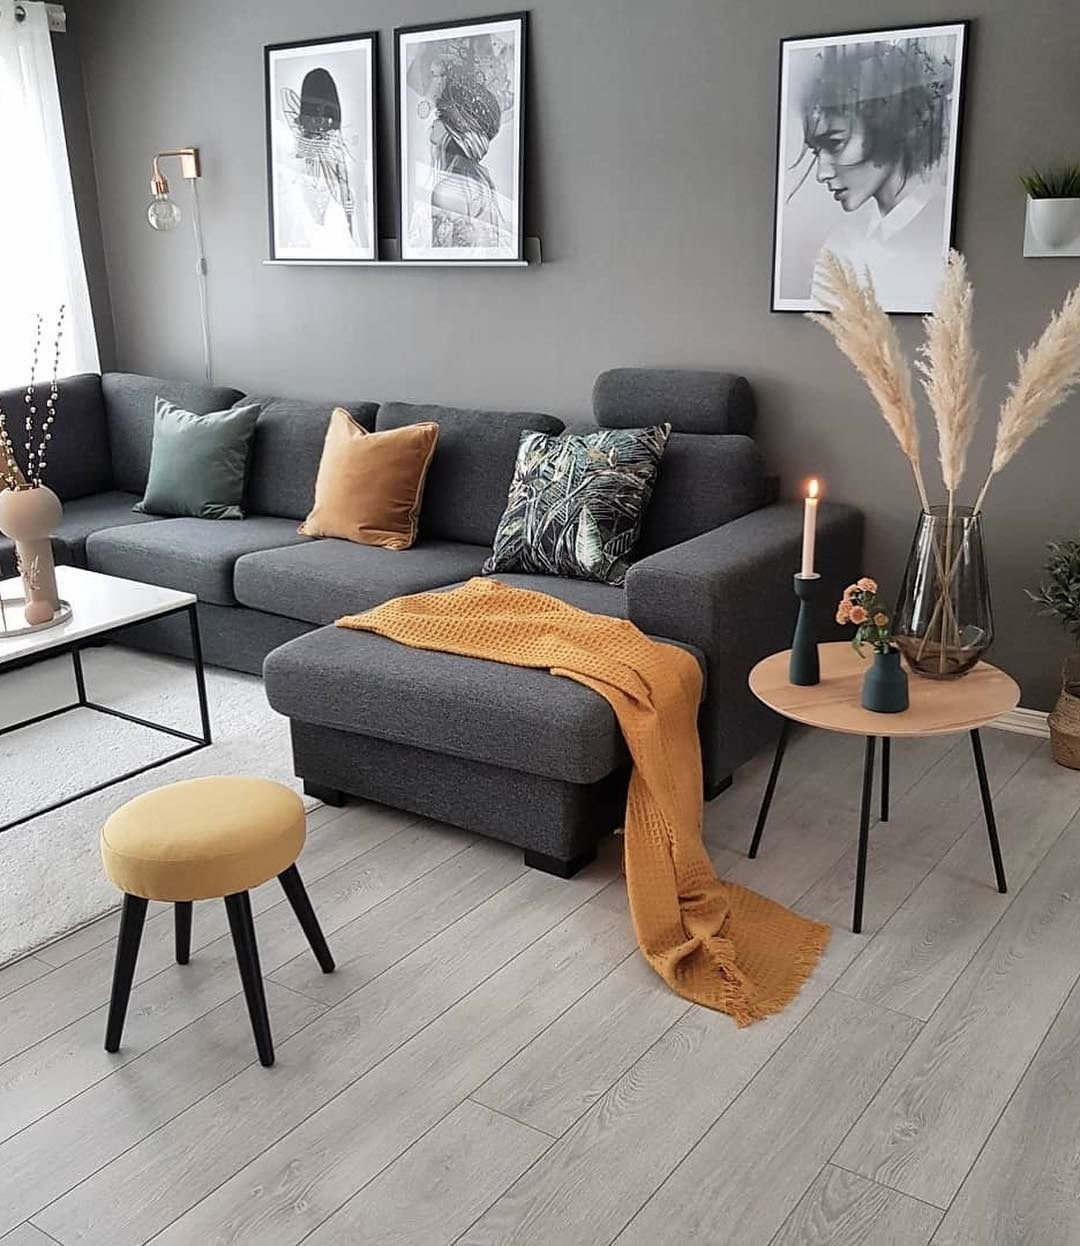 Home Inspiration Fashionable Dots The Perfect Scandinavian Style Home Living Room Decor Modern Living Room Decor Apartment Living Room Color Room color fashionable inspiration